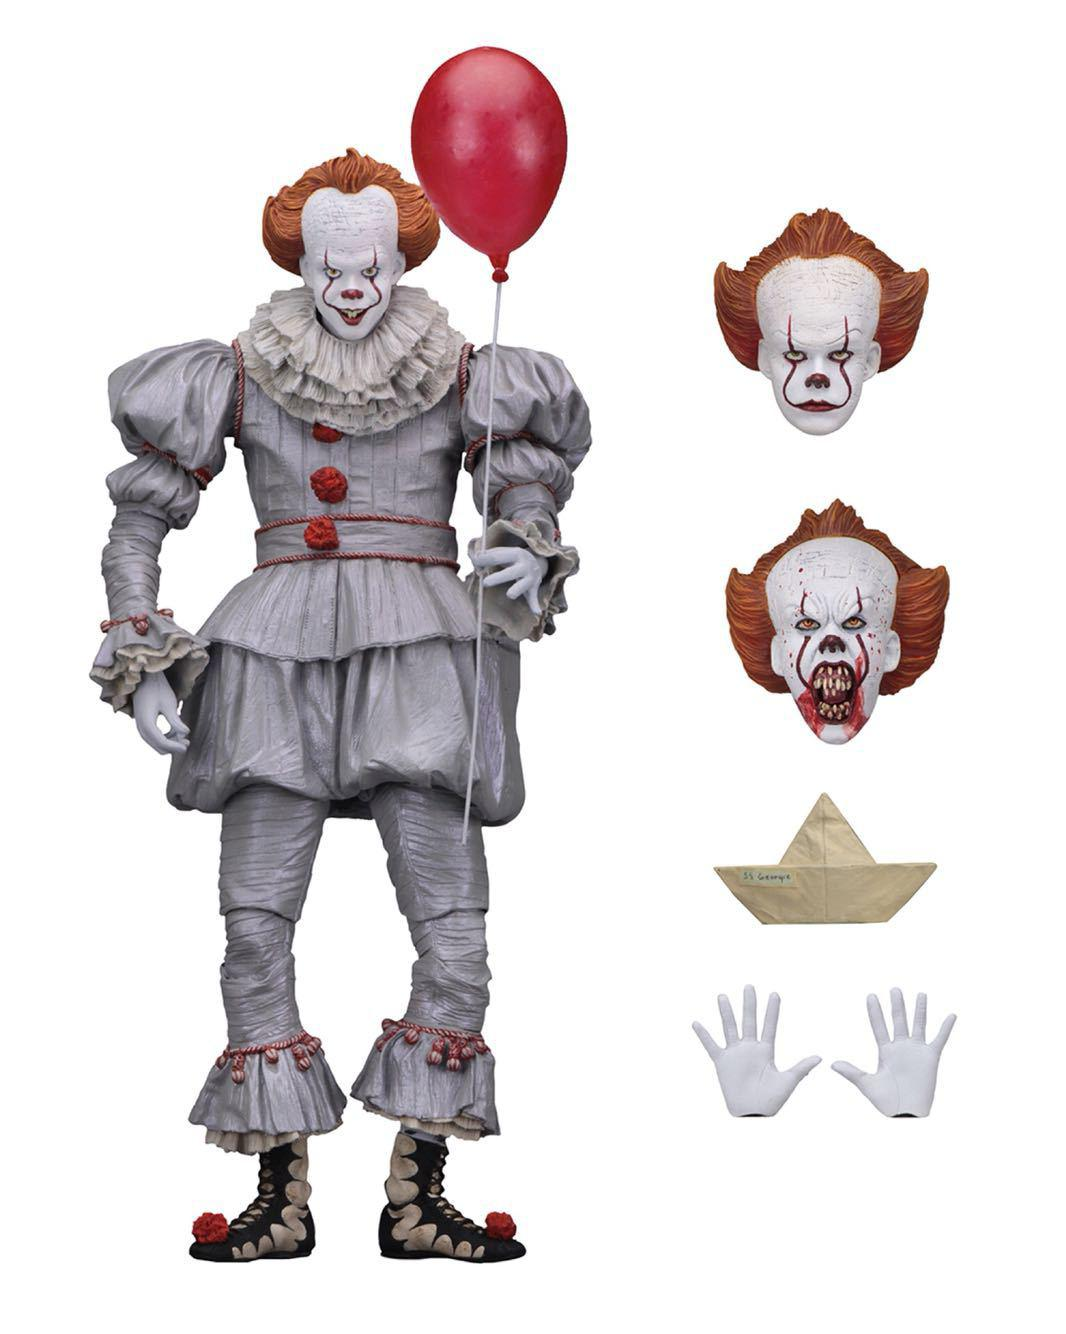 Neca Original Stephen King's It Pennywise Joker clown BJD Action Figure Toys Dolls 18cm купить дешево онлайн